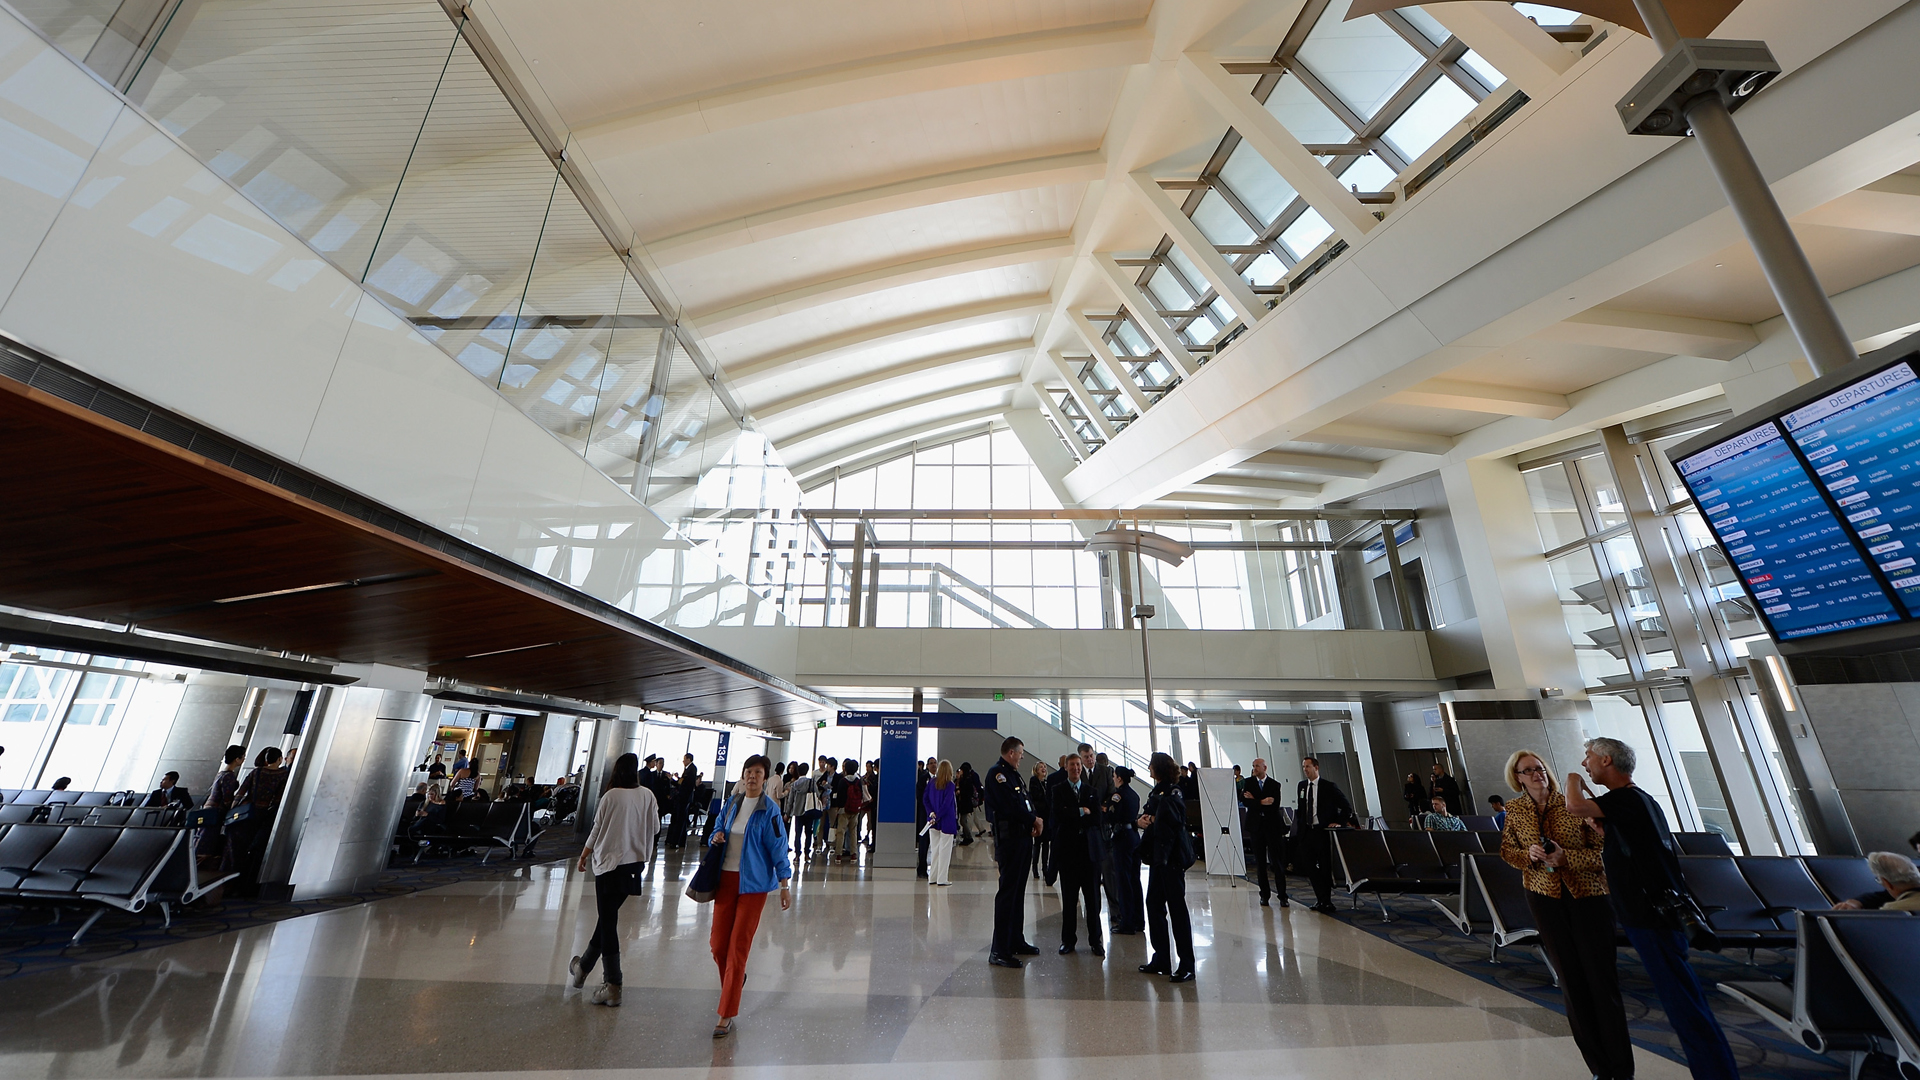 People walk through the north concourse of Tom Bradley International Terminal during its unveiling at Los Angeles International Airport on March 6, 2013. (Credit: Kevork Djansezian/Getty Images)